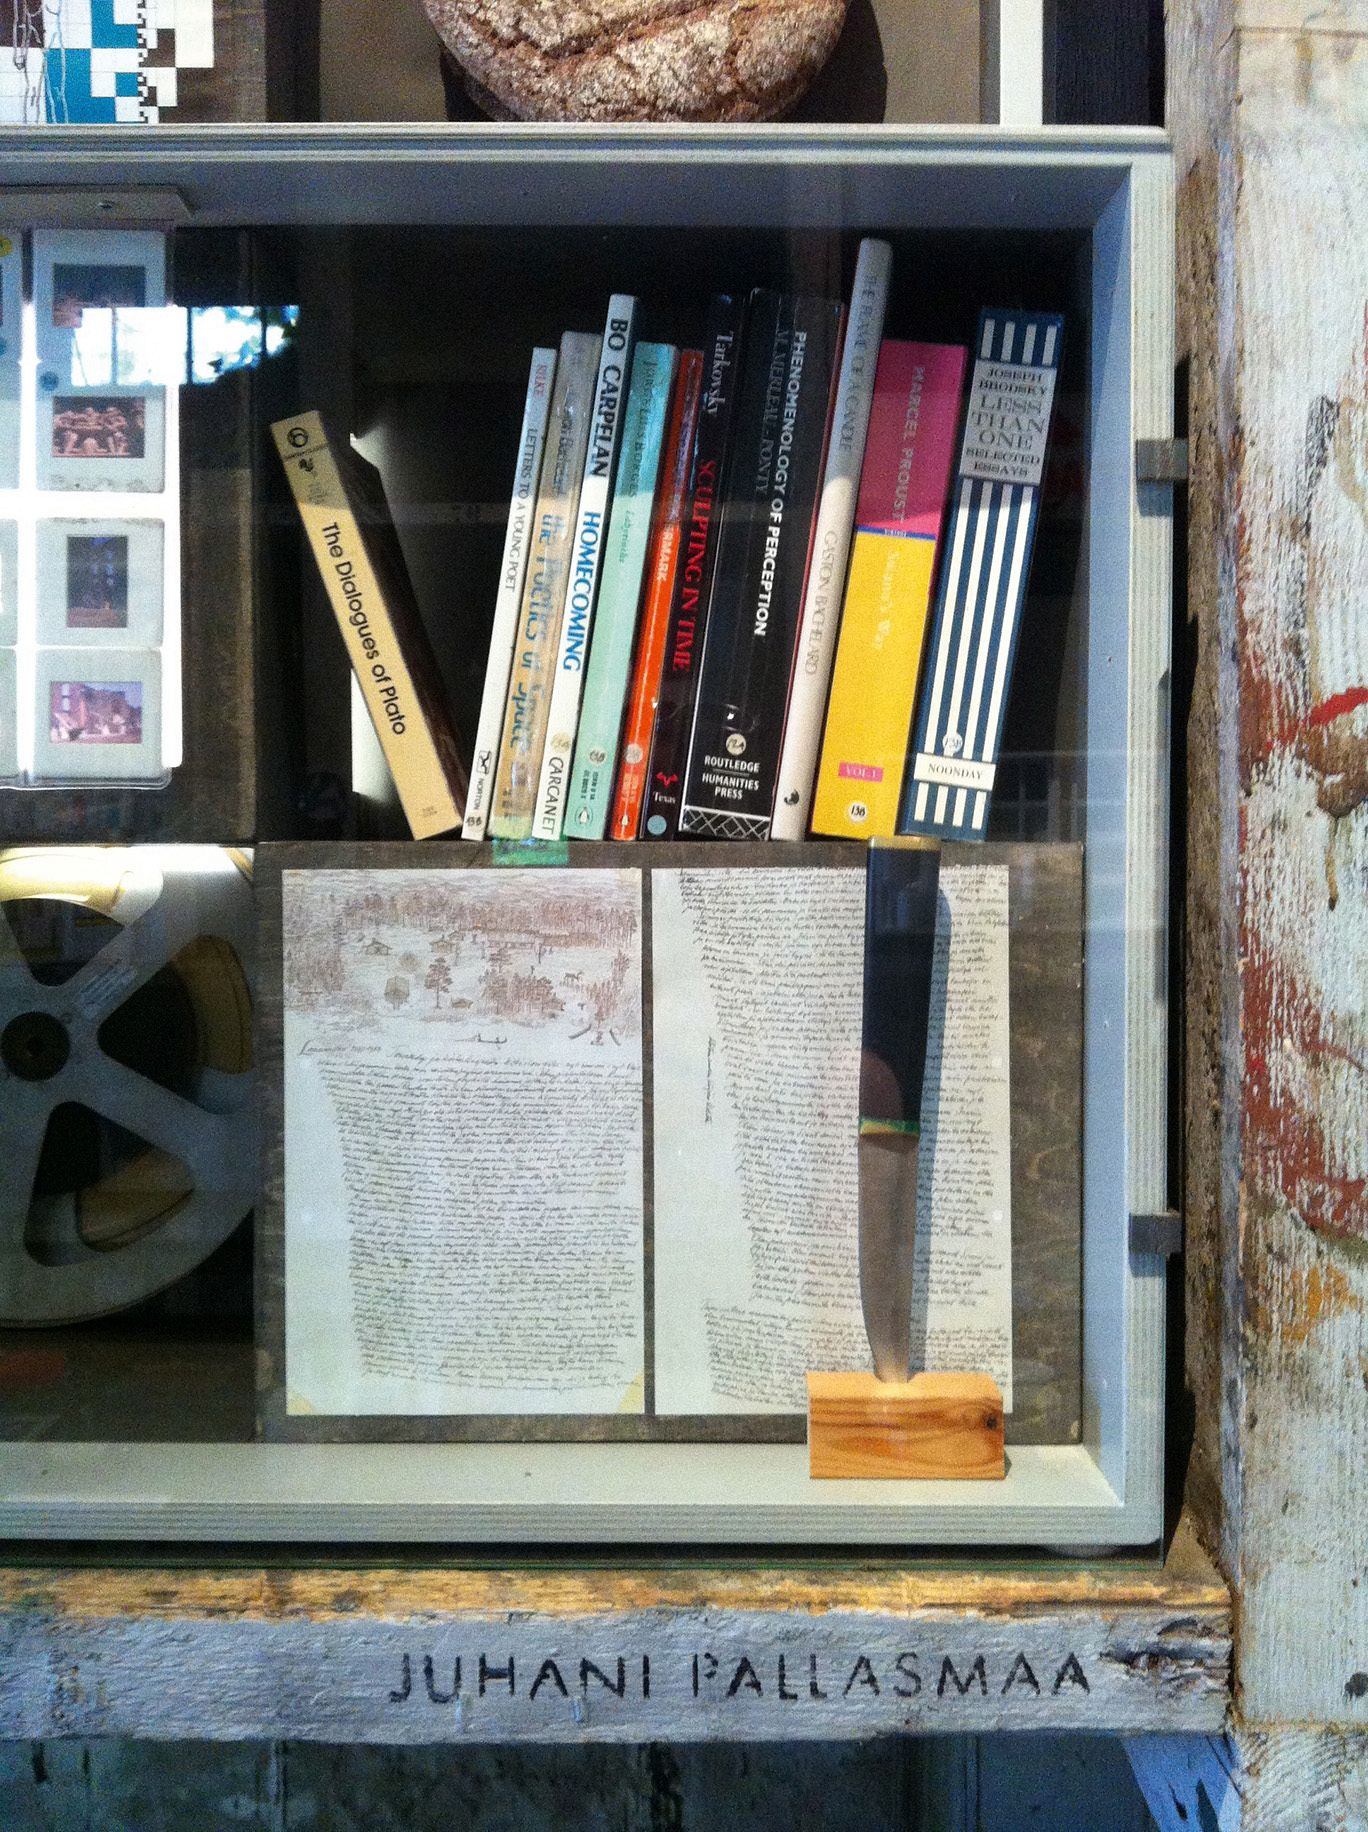 Juhani Pallasmaa. Books, pictures, films, notes... And his knife, very precious to a Finn...